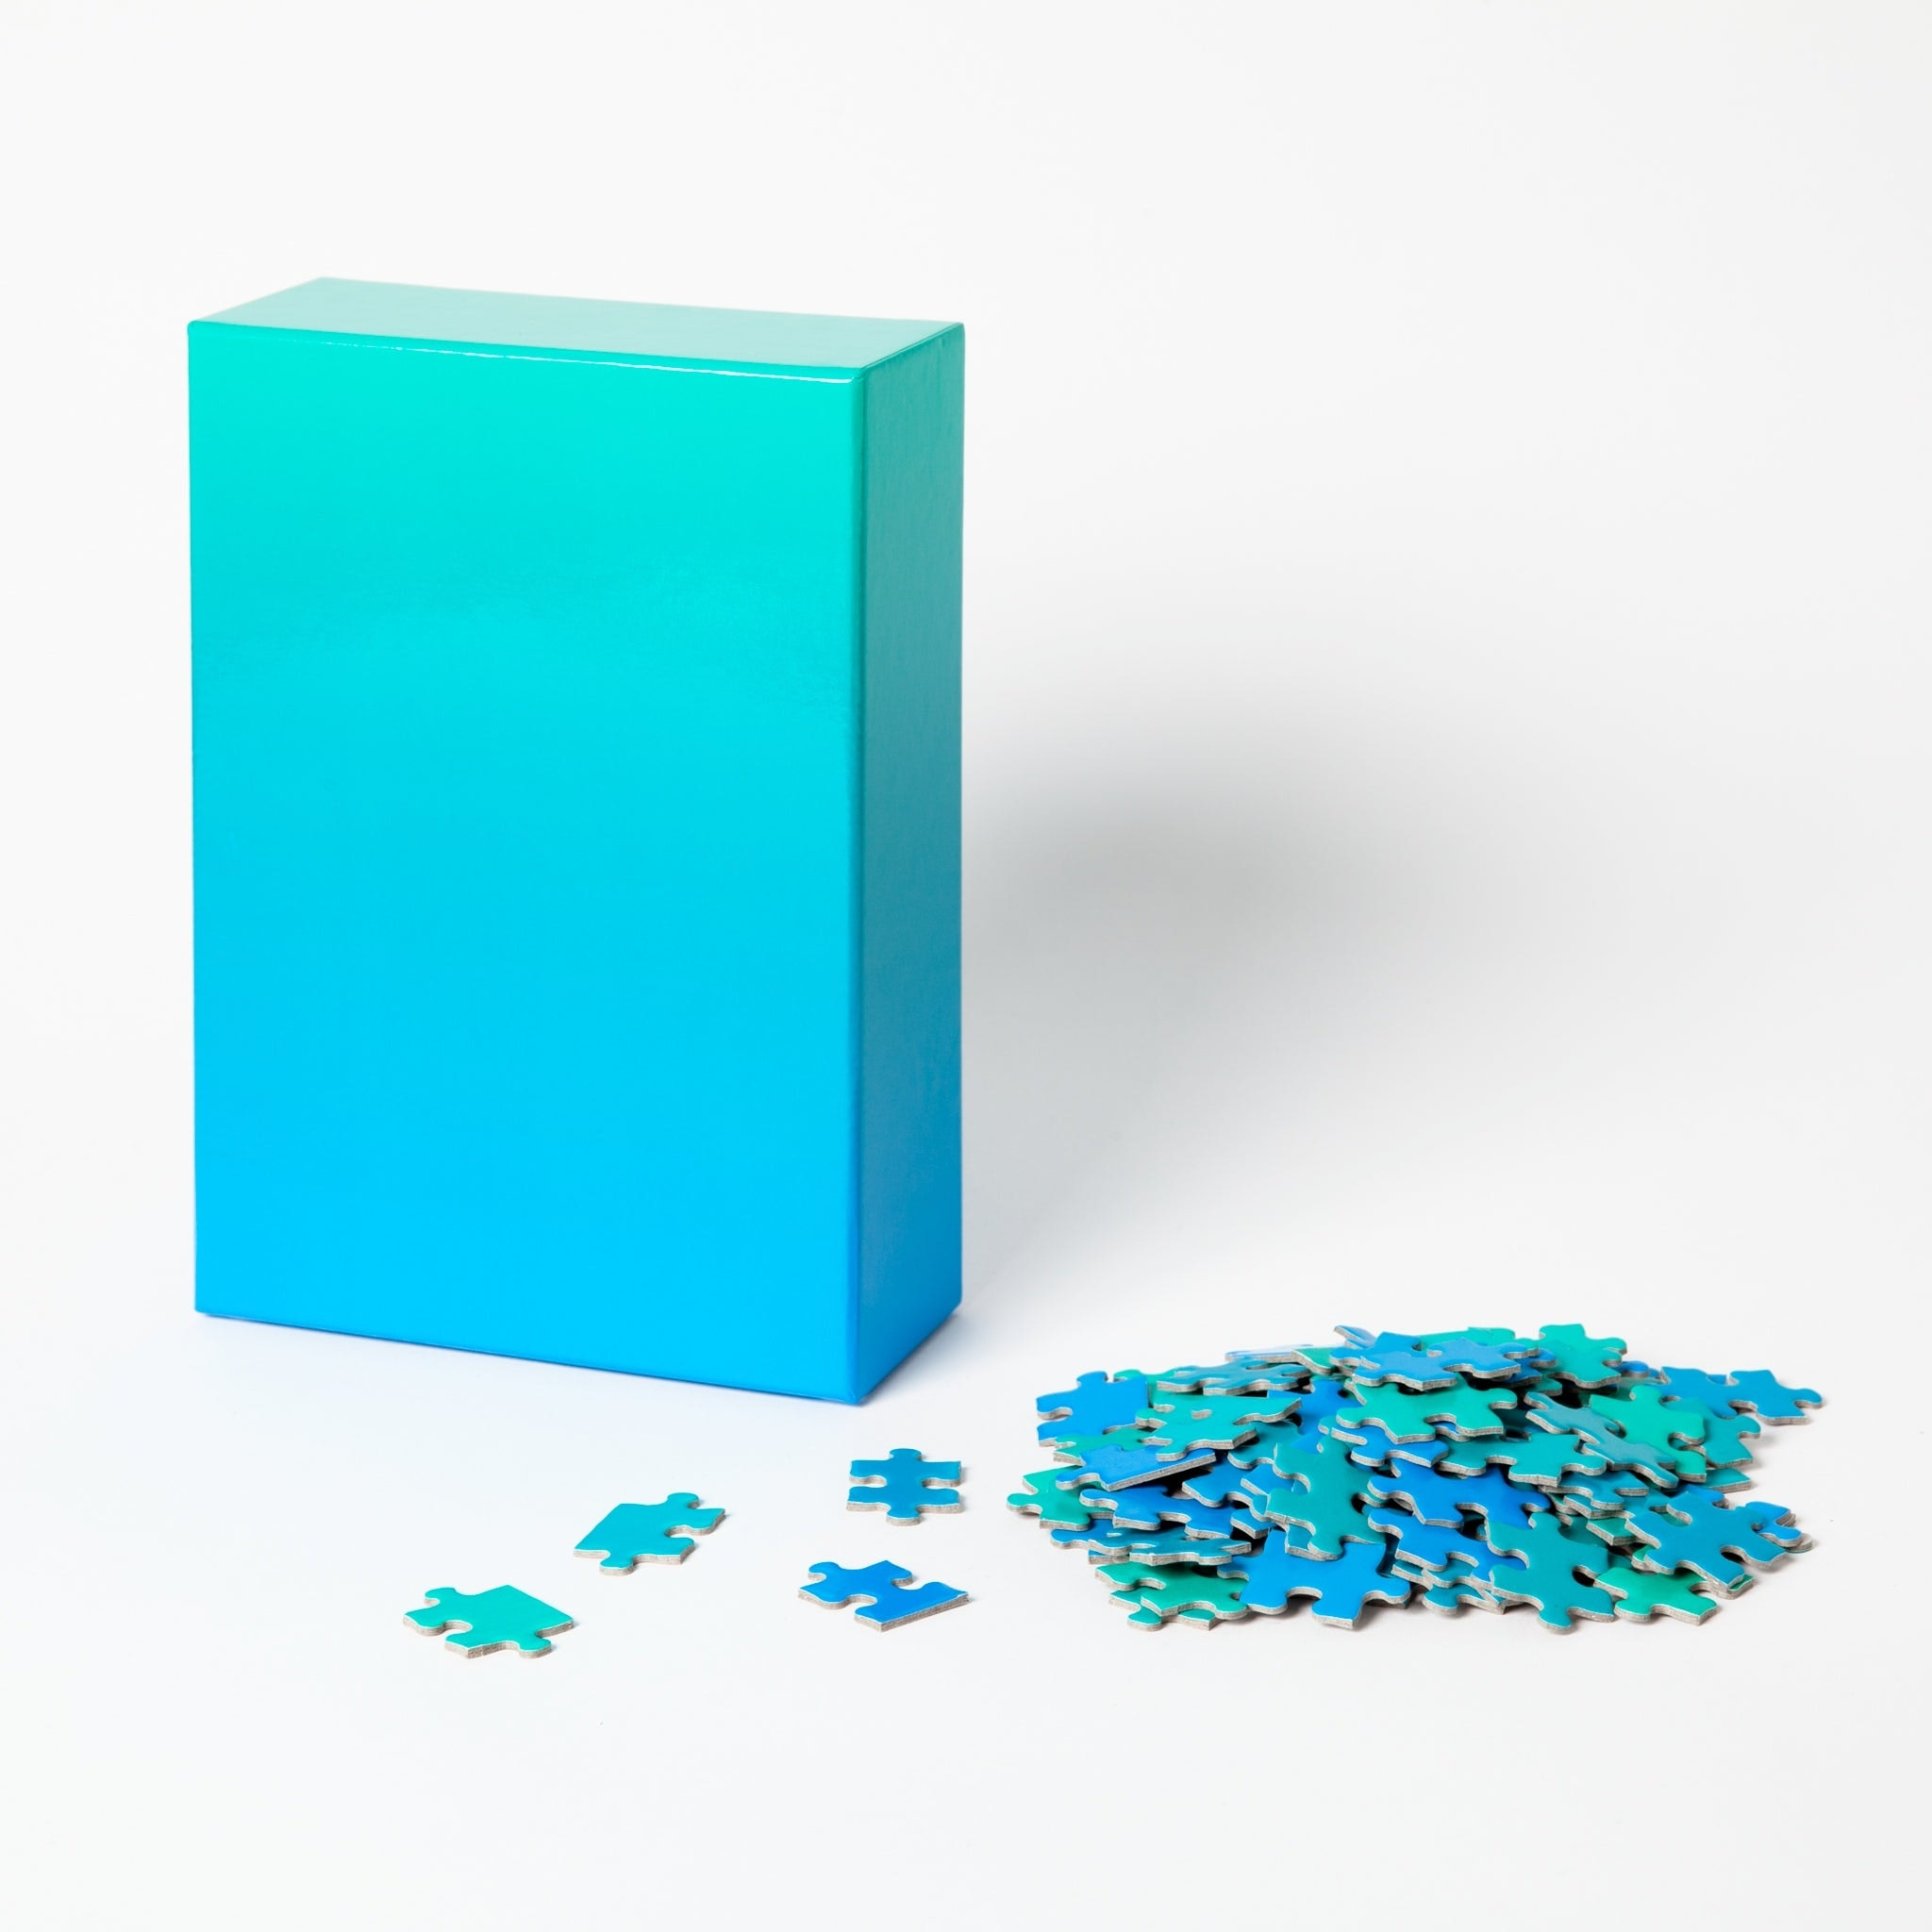 Blue and Green Gradient Puzzle by Areaware